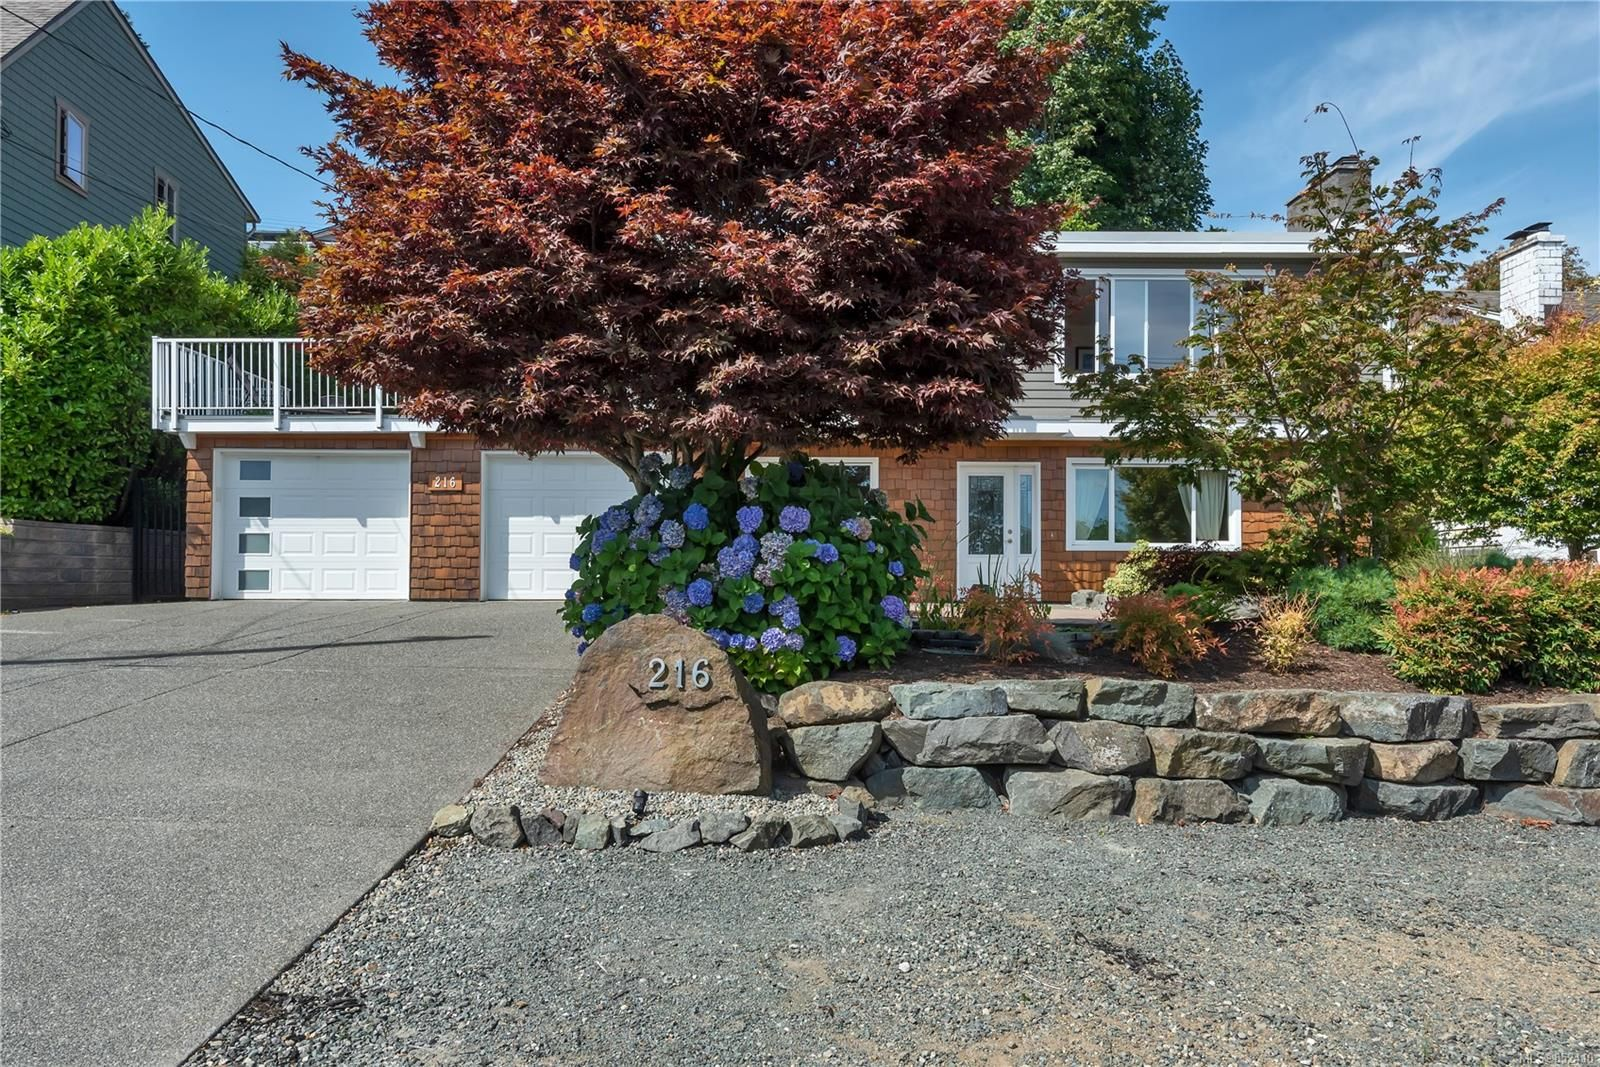 Main Photo: 216 S McLean St in : CR Campbell River South House for sale (Campbell River)  : MLS®# 852410